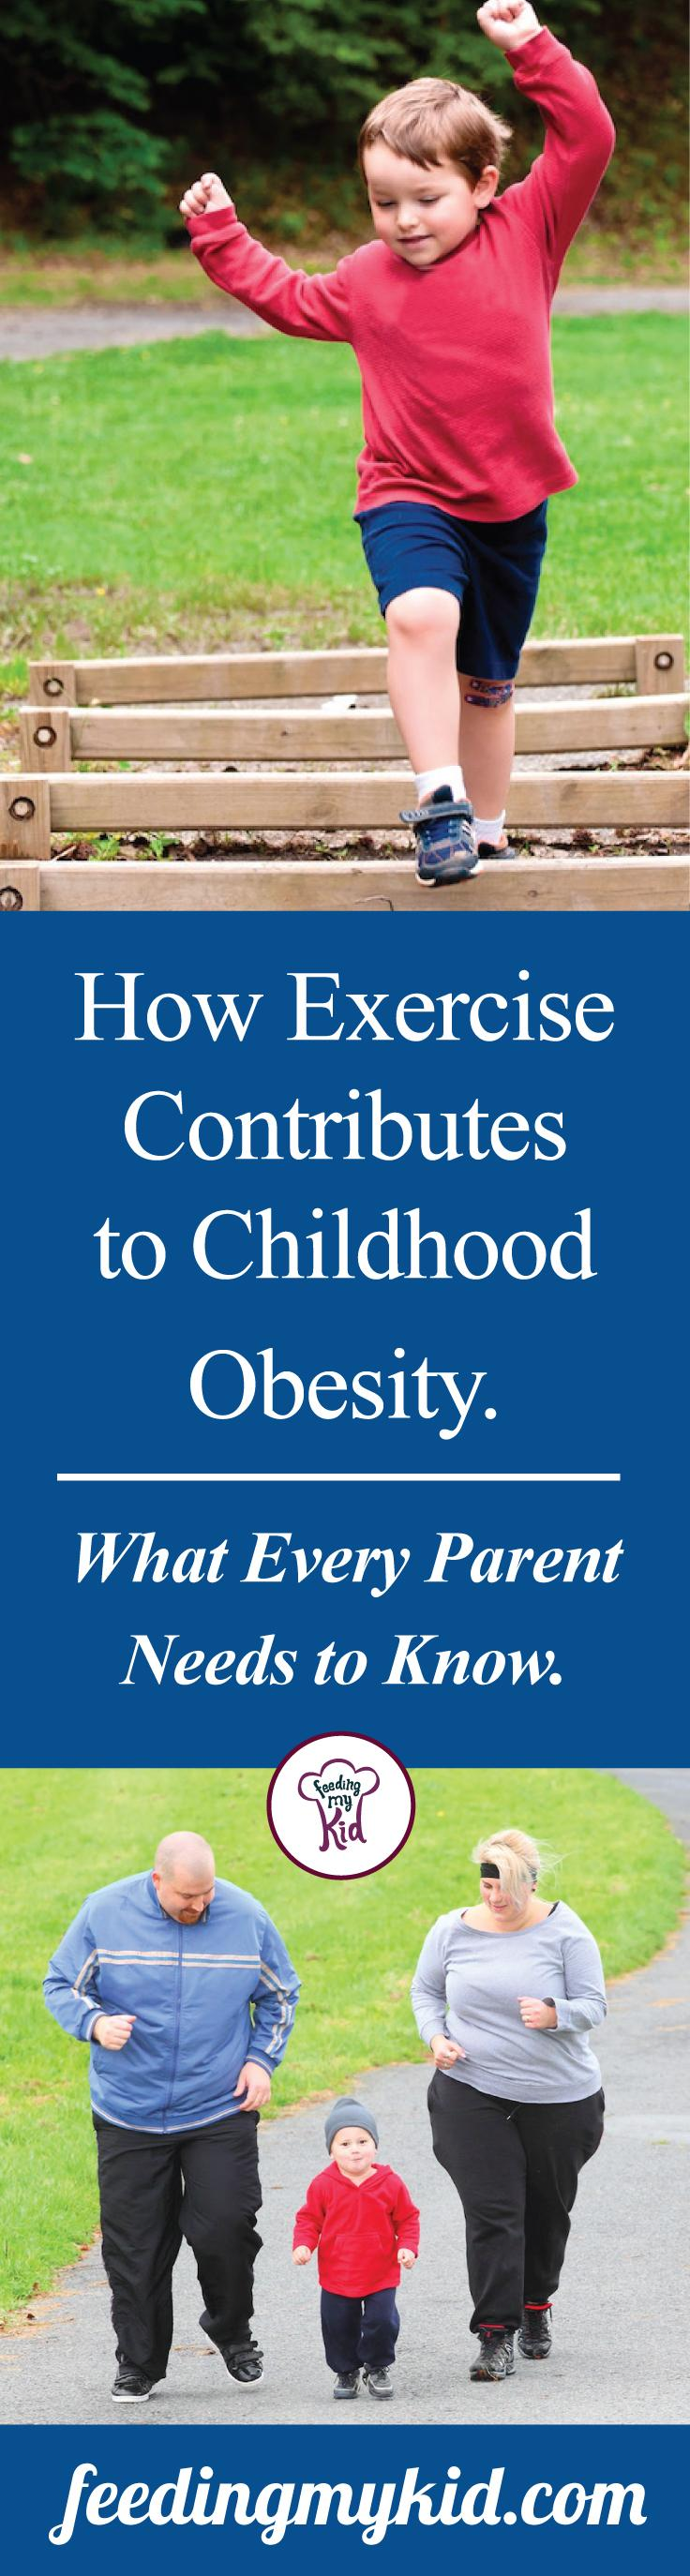 causes of childhood obesity pdf